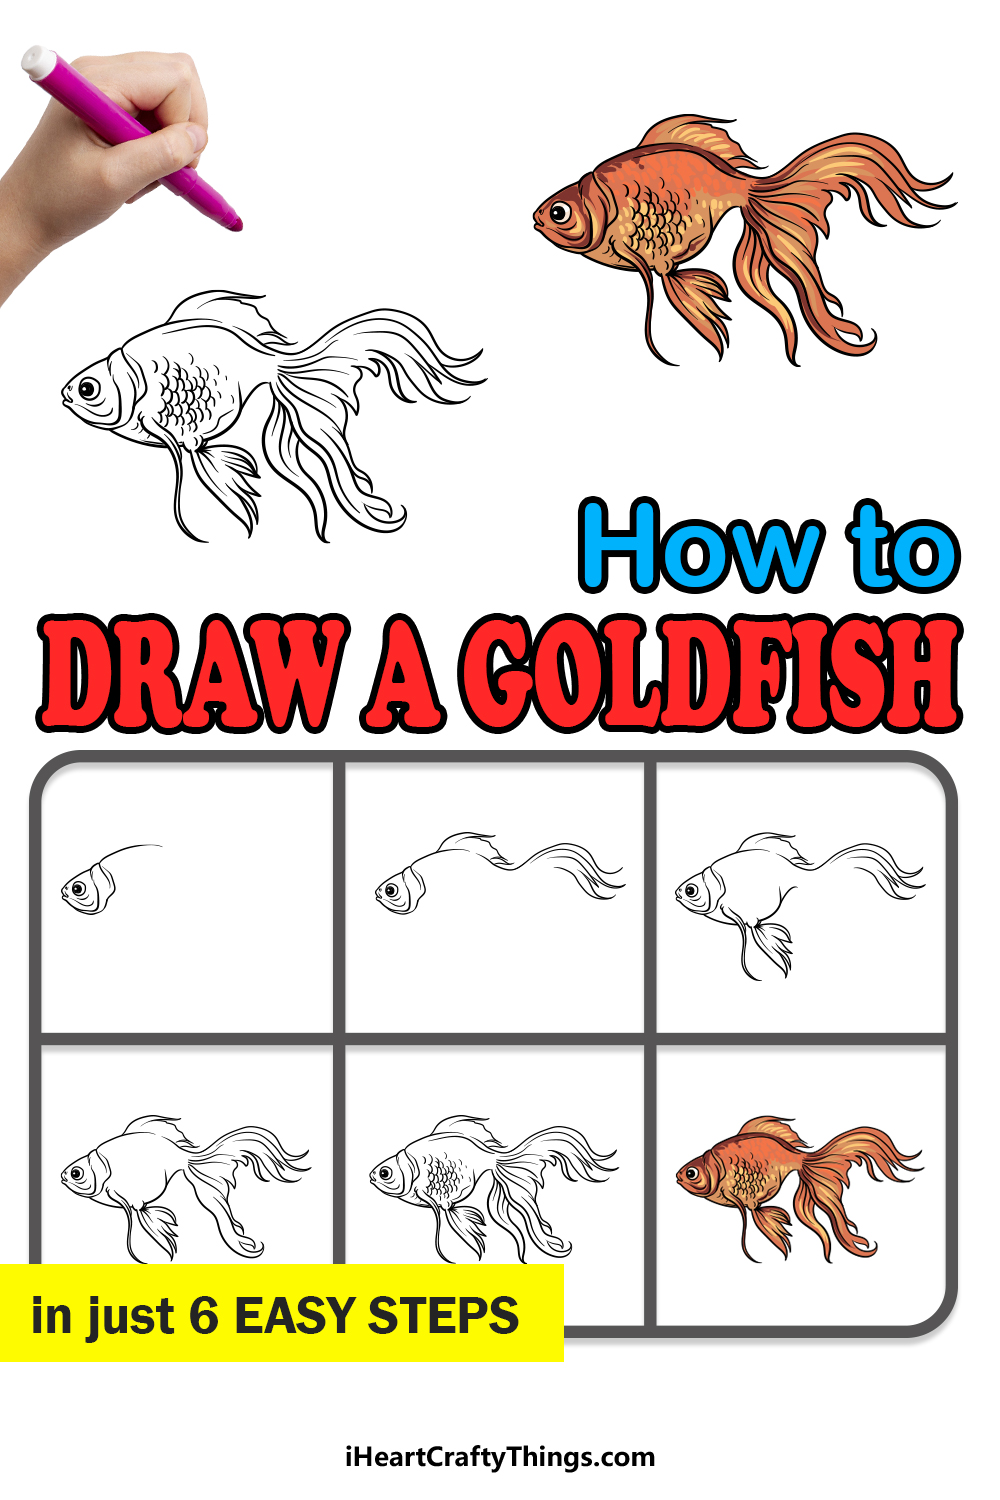 how to draw a goldfish in 6 easy steps